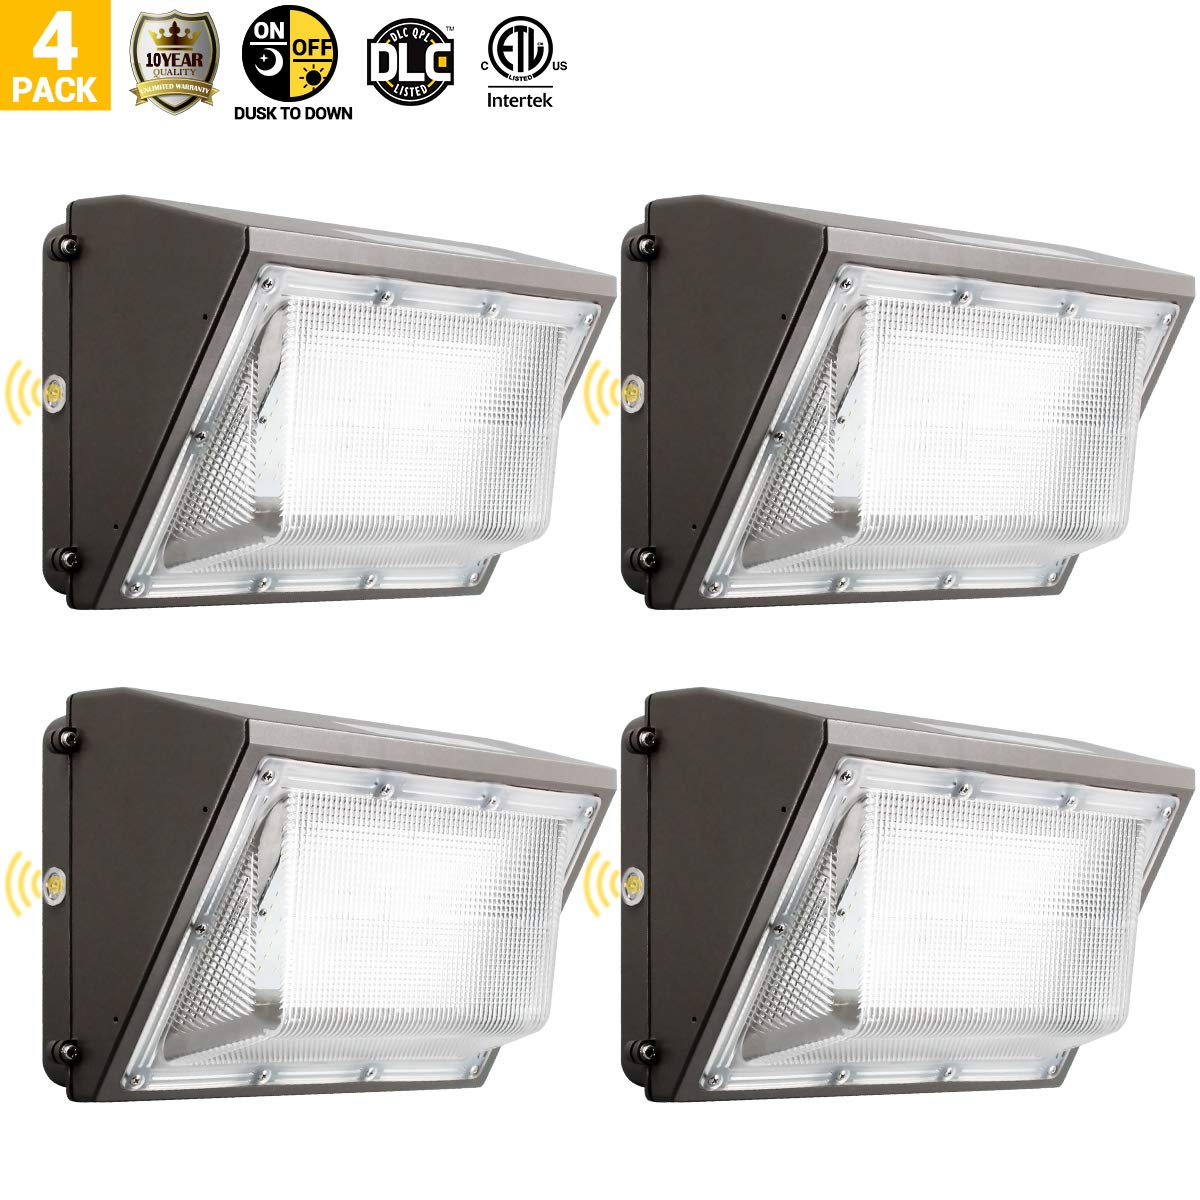 60W Led Wall Pack Light with Photocell, 4PK Outdoor Security Lighting,  5000K Daylight, 6600LM, Lifetime 50000H, Ip65 Waterproof Area Lighting, 10